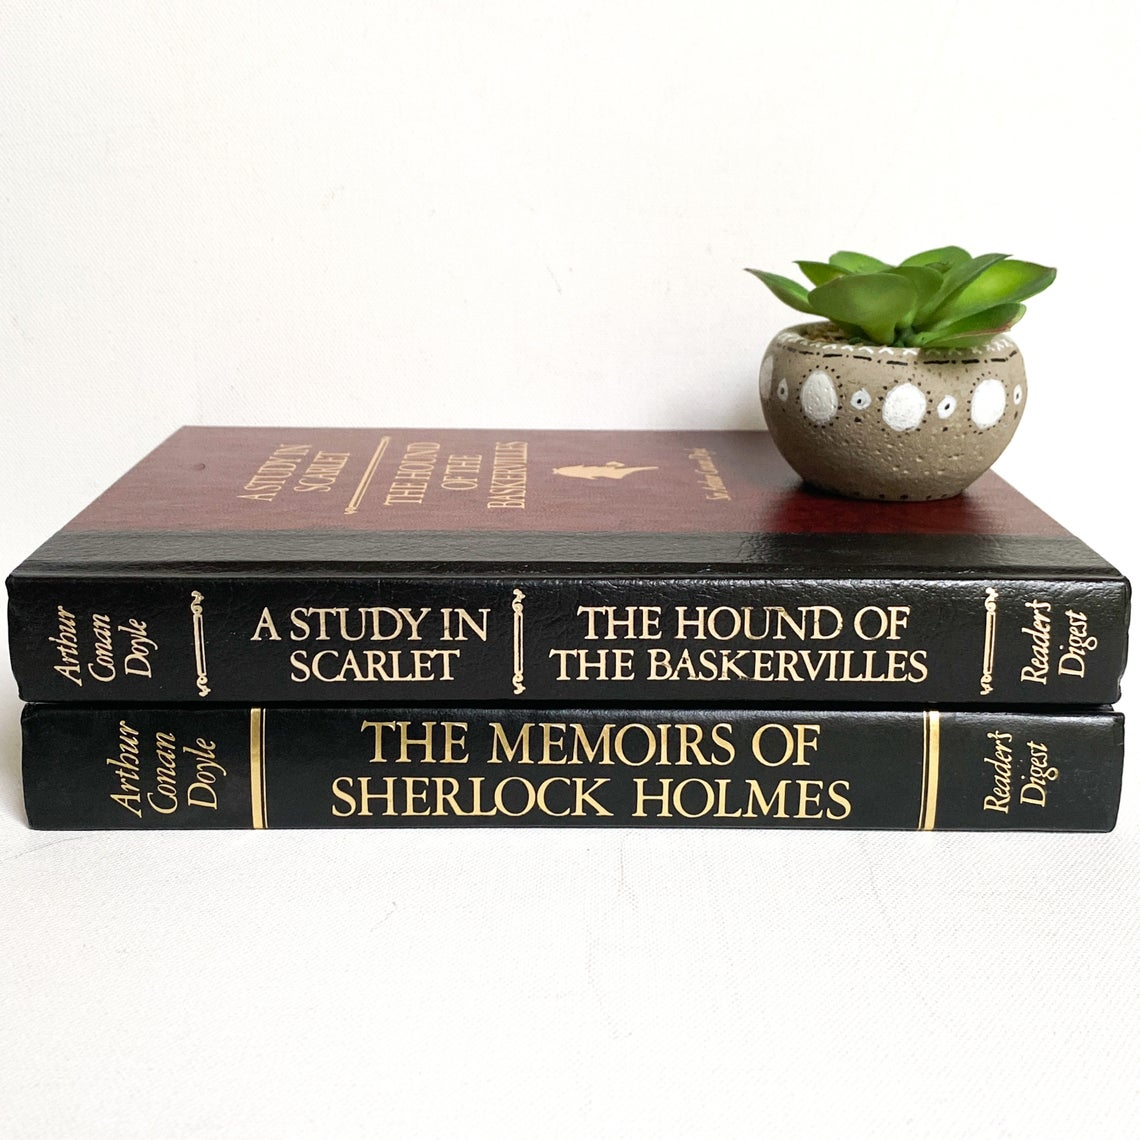 Vintage Sherlock Holmes Book Set, The Hound of Baskervilles, A Study in Scarlet The Memoirs of Sherlock Holmes, both by Sir Arthur Conan Doyle